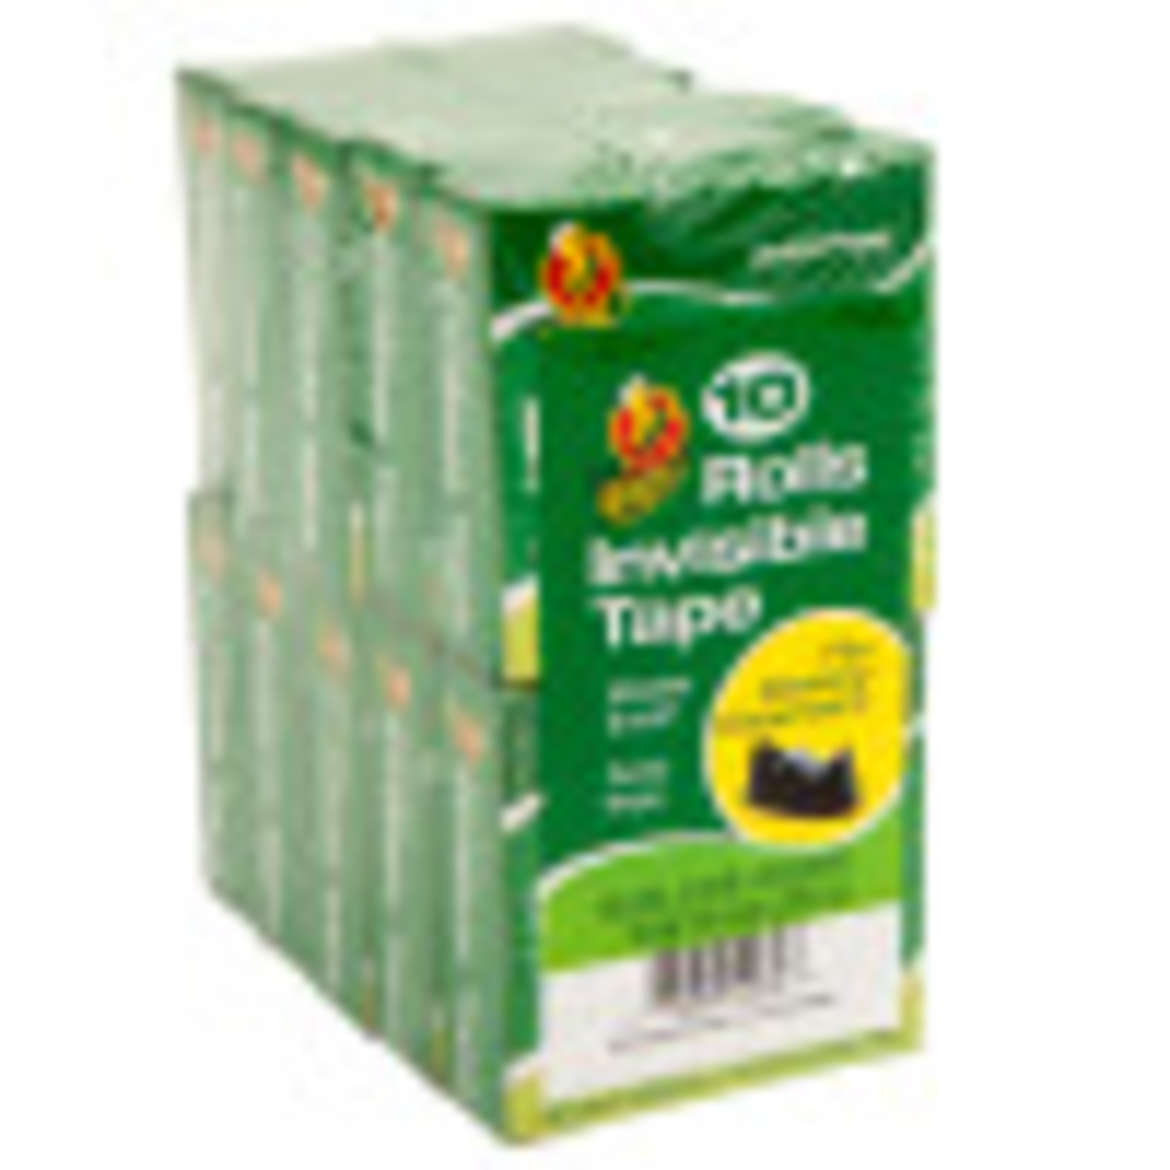 Duck® Brand Matte Finish Invisible Tape - Clear, 10 pk, .75 in. x 1000 in. Image